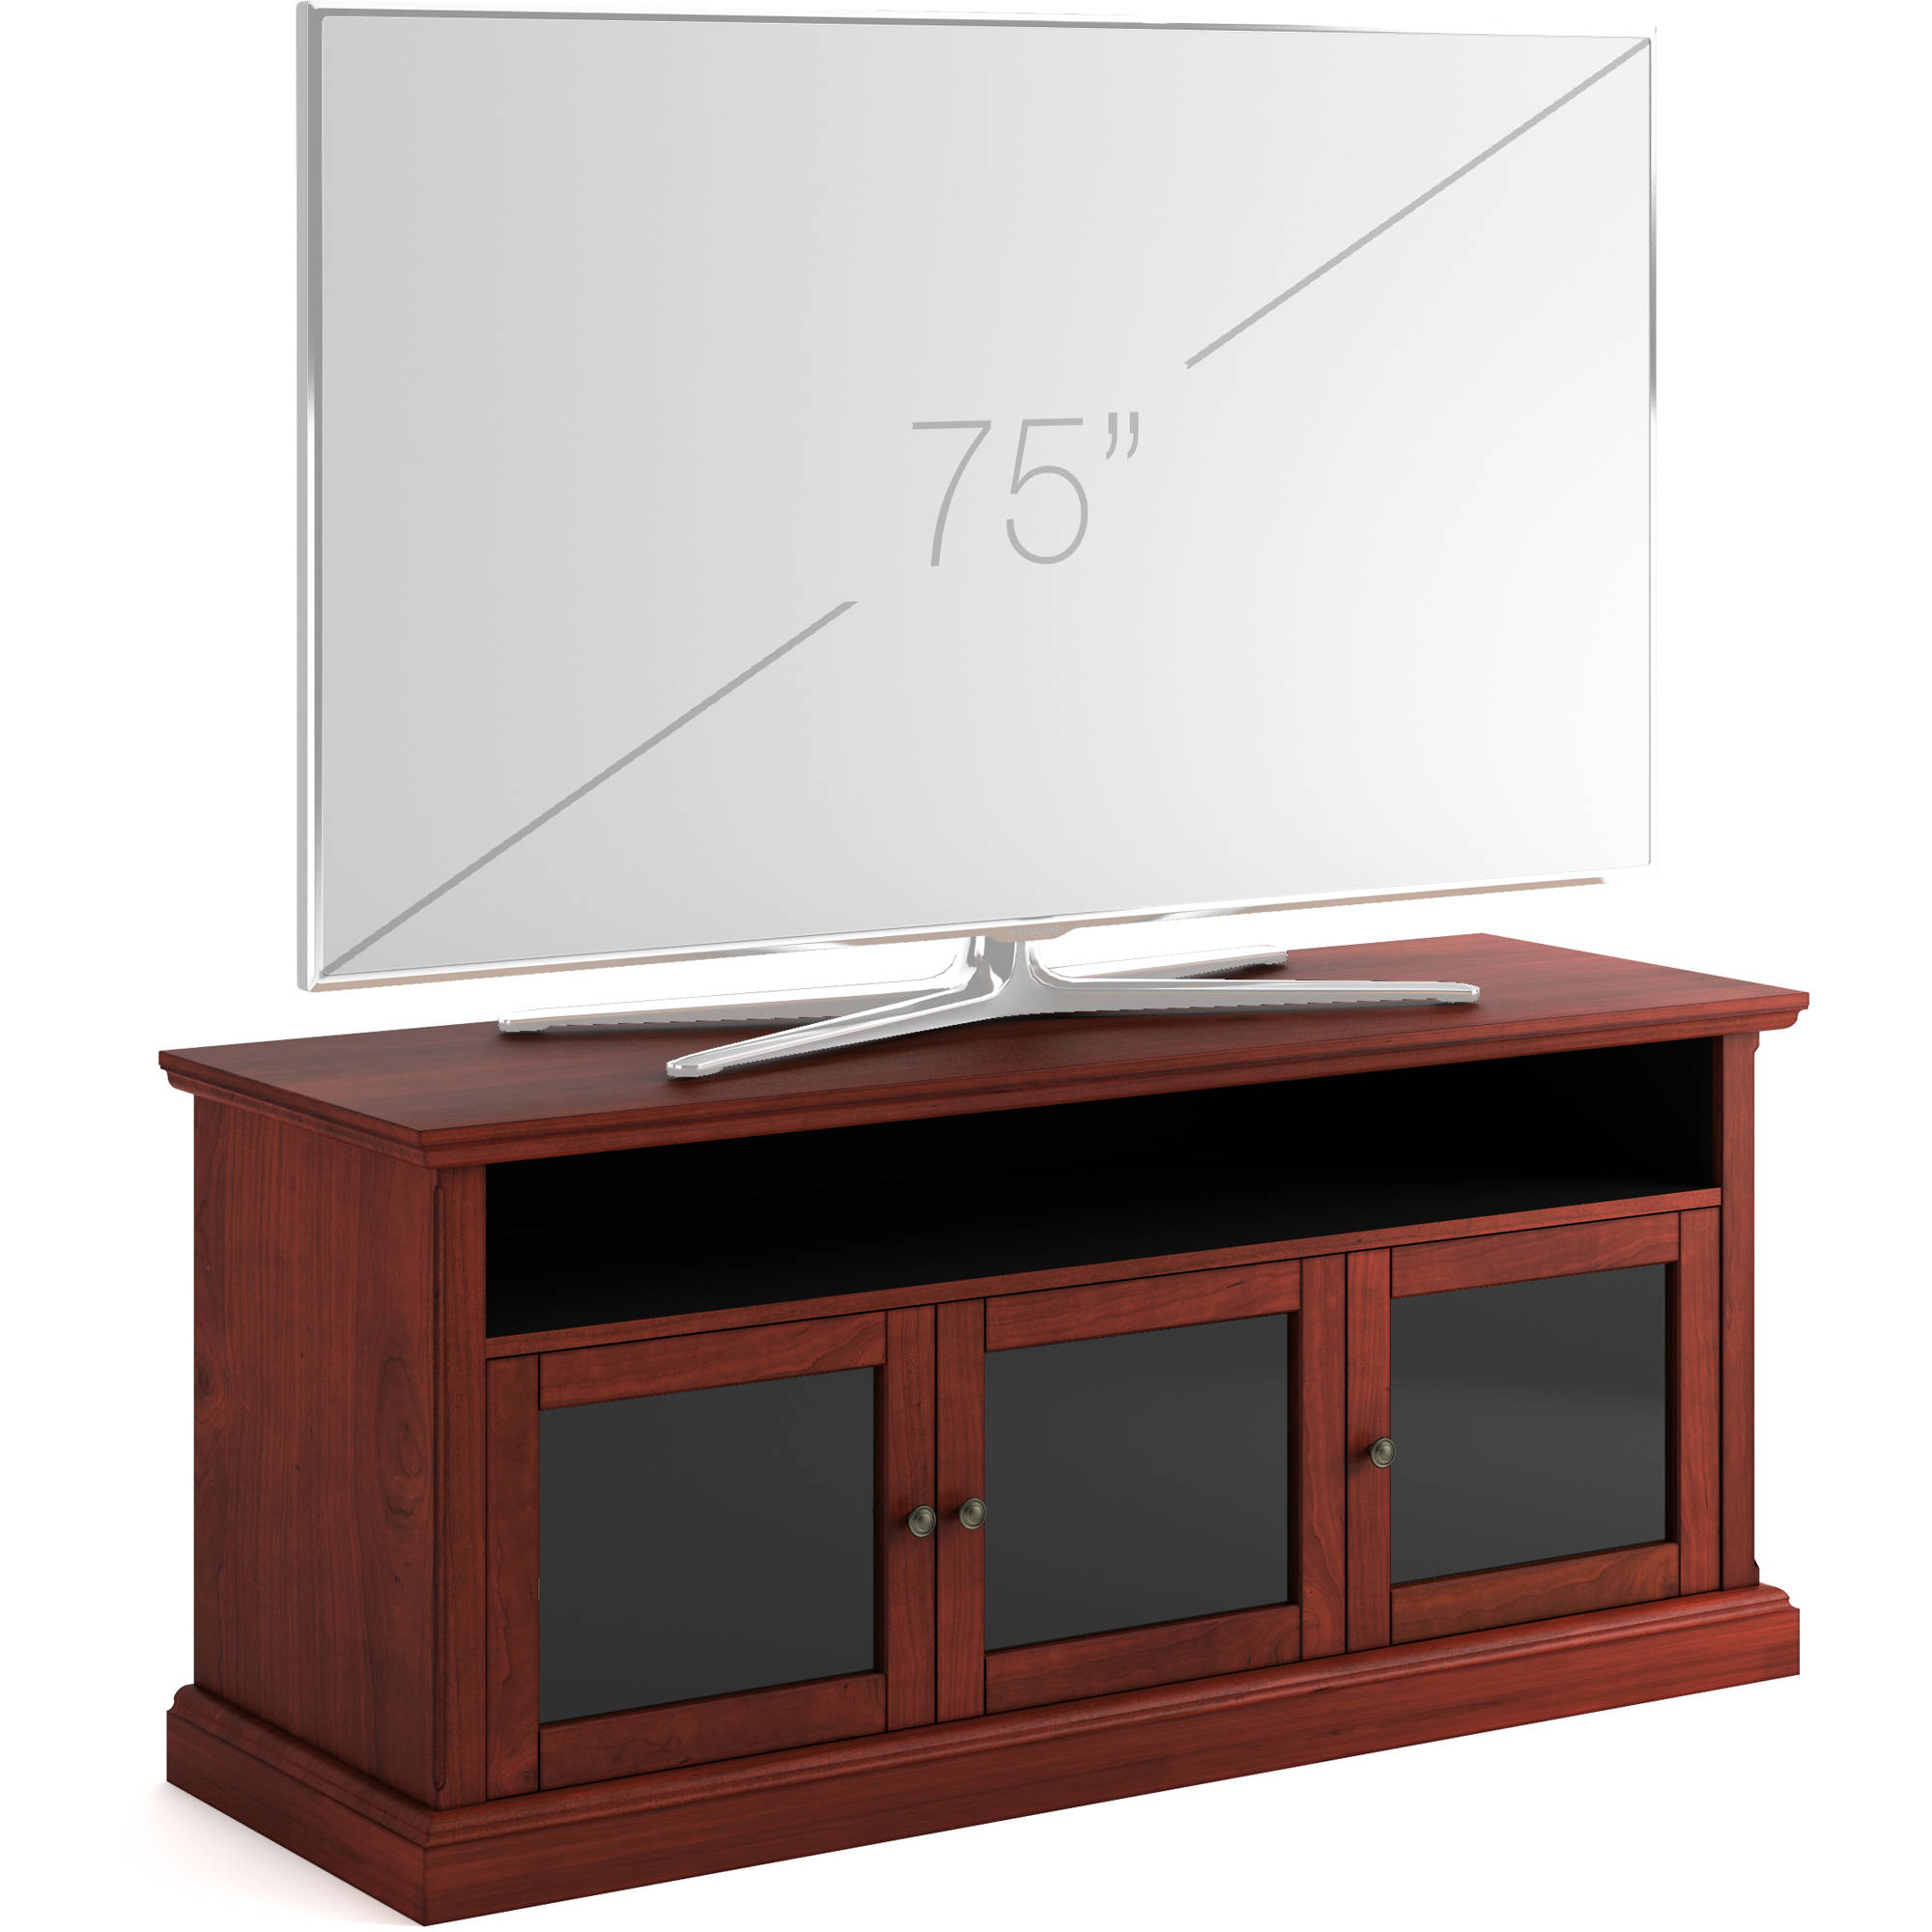 stereo designs design cabinet cabinets salamander media tv isl av